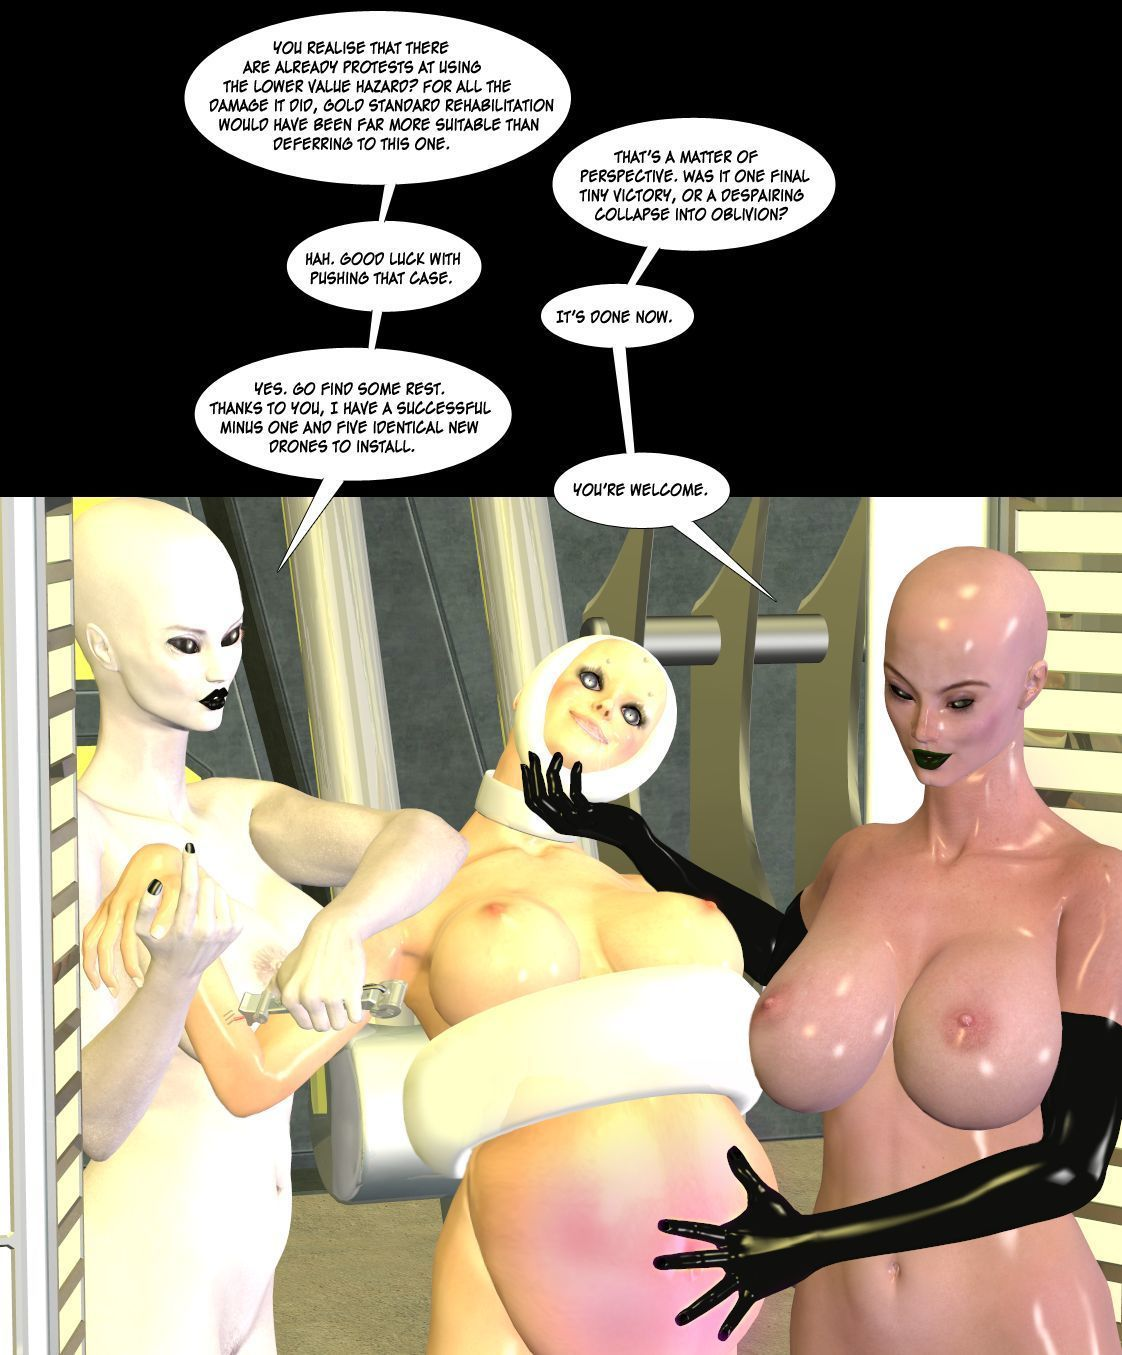 [dollmistress] Interactive Processing (With Captions) - part 7